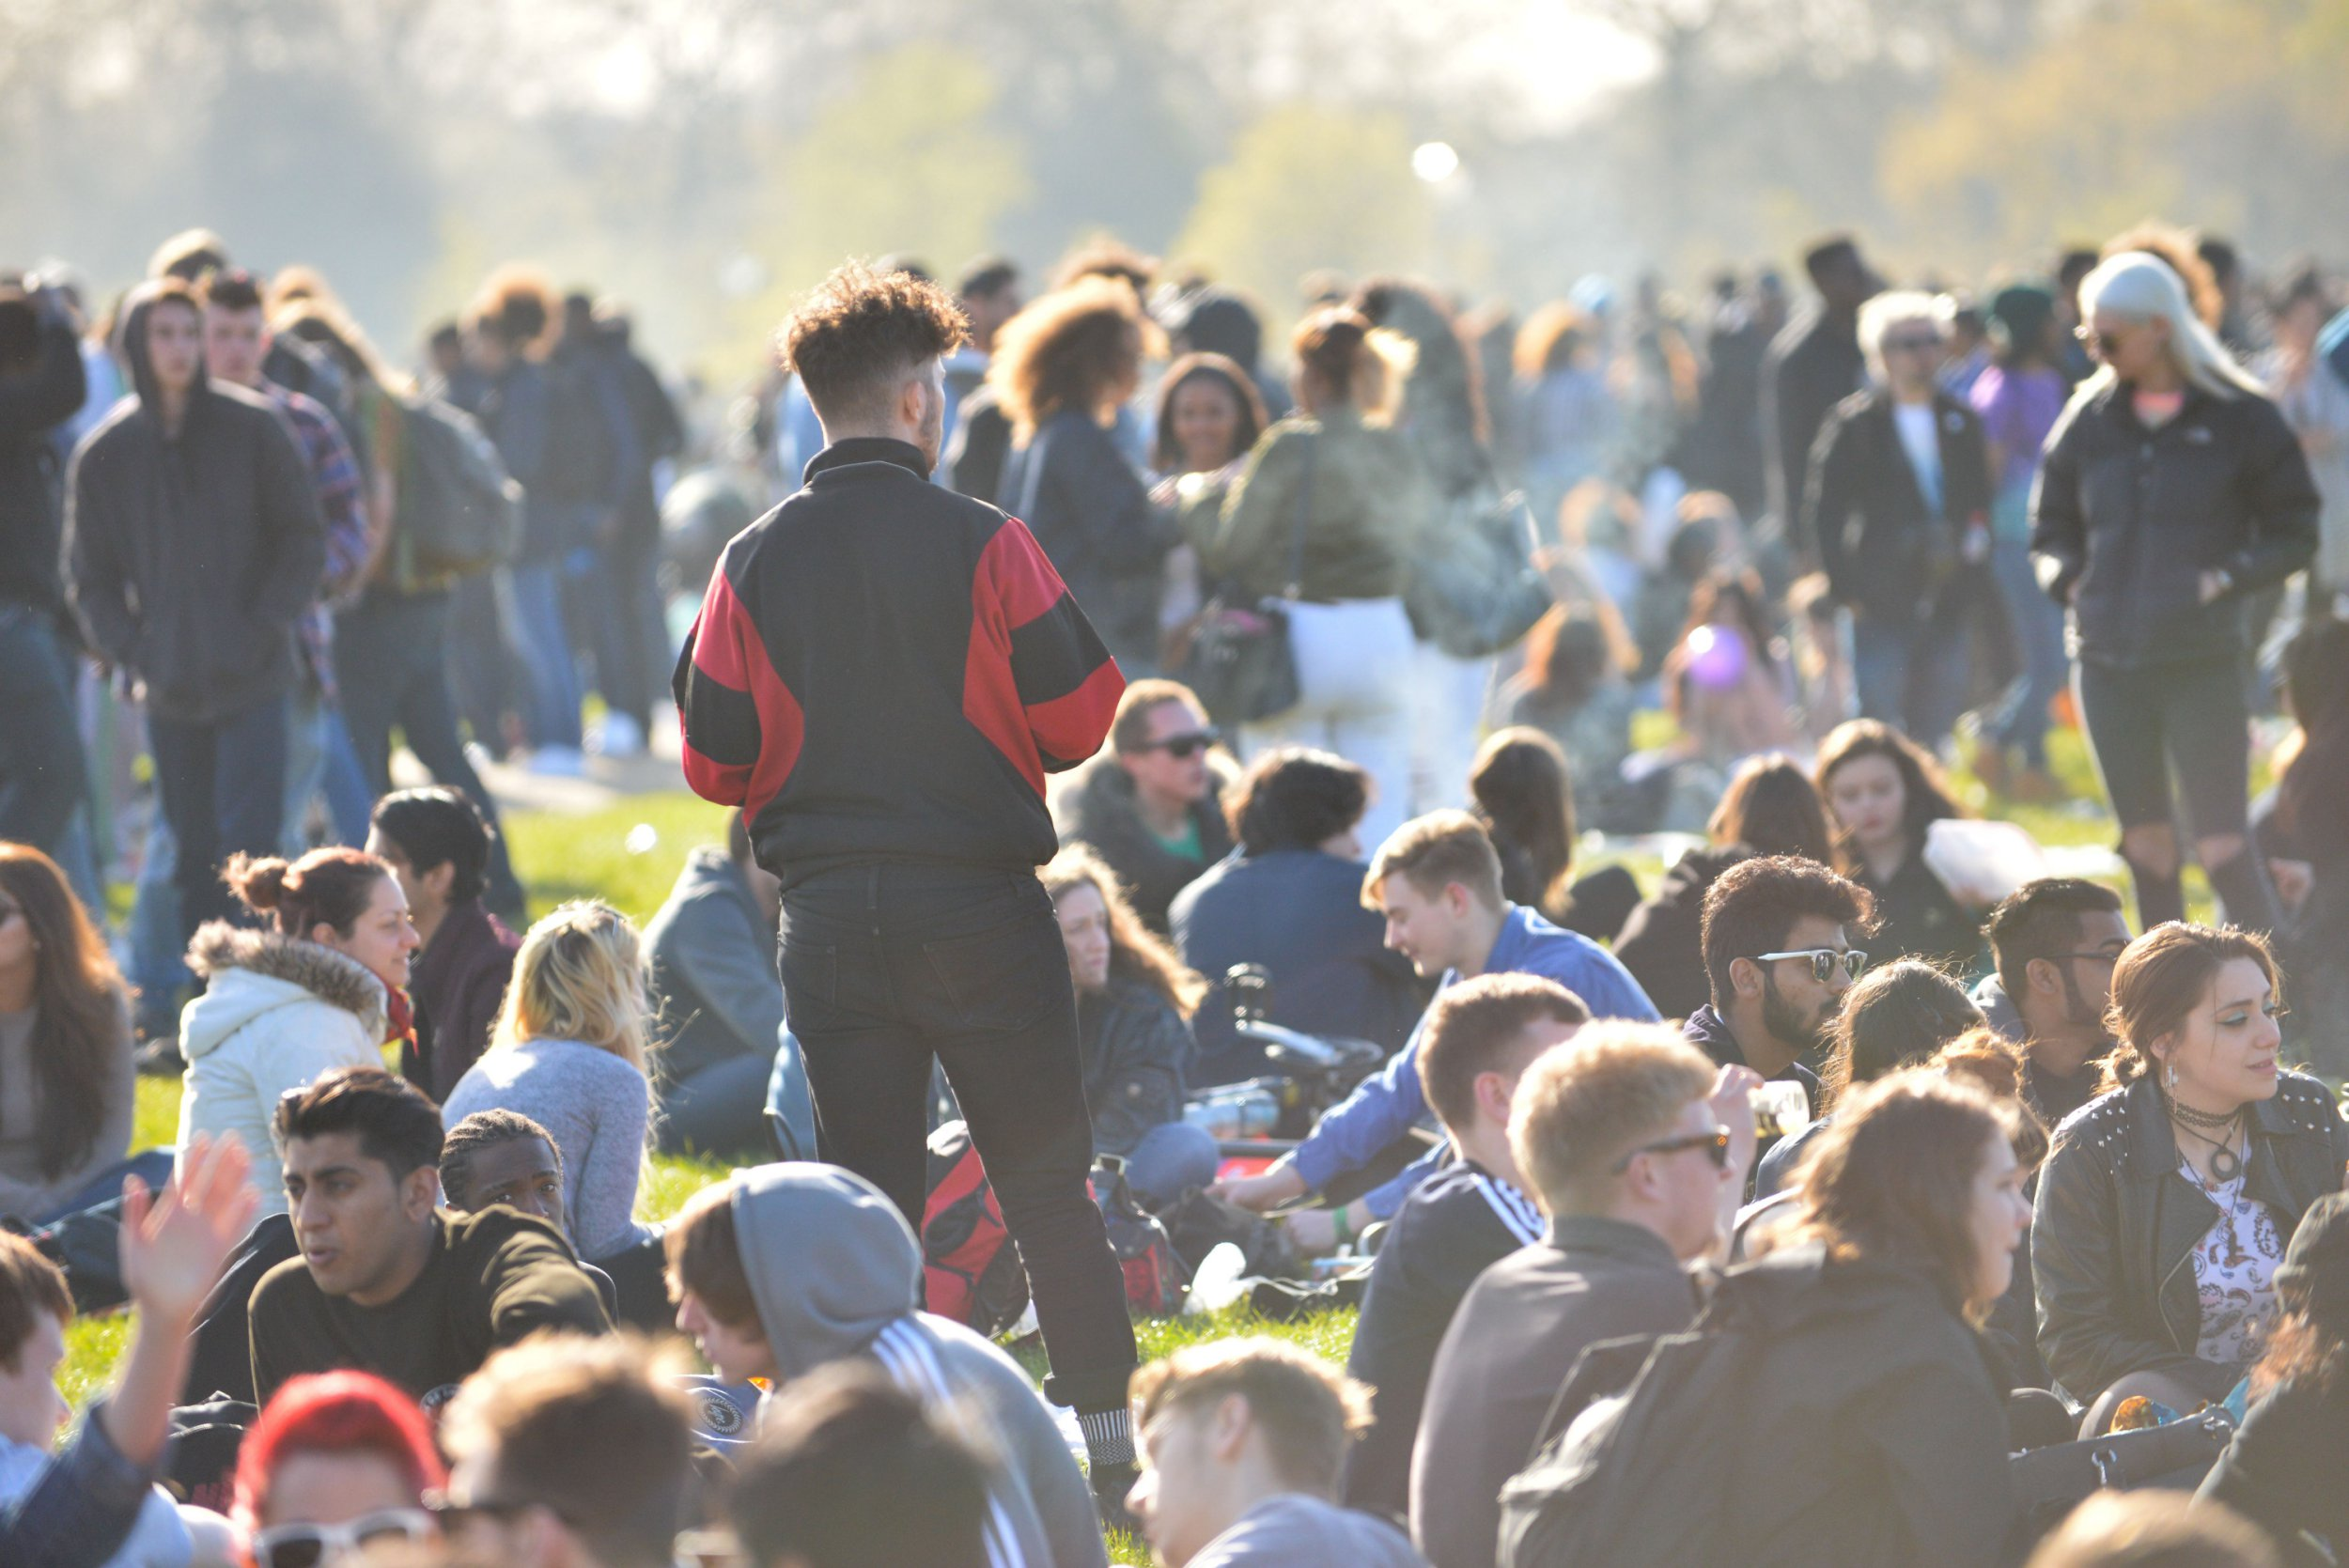 Mandatory Credit: Photo by Matthew Chattle/REX/Shutterstock (5658334c) General view of the '4/20' demonstration in Hyde Park 420 Day Rally, London, Britain - 20 Apr 2016